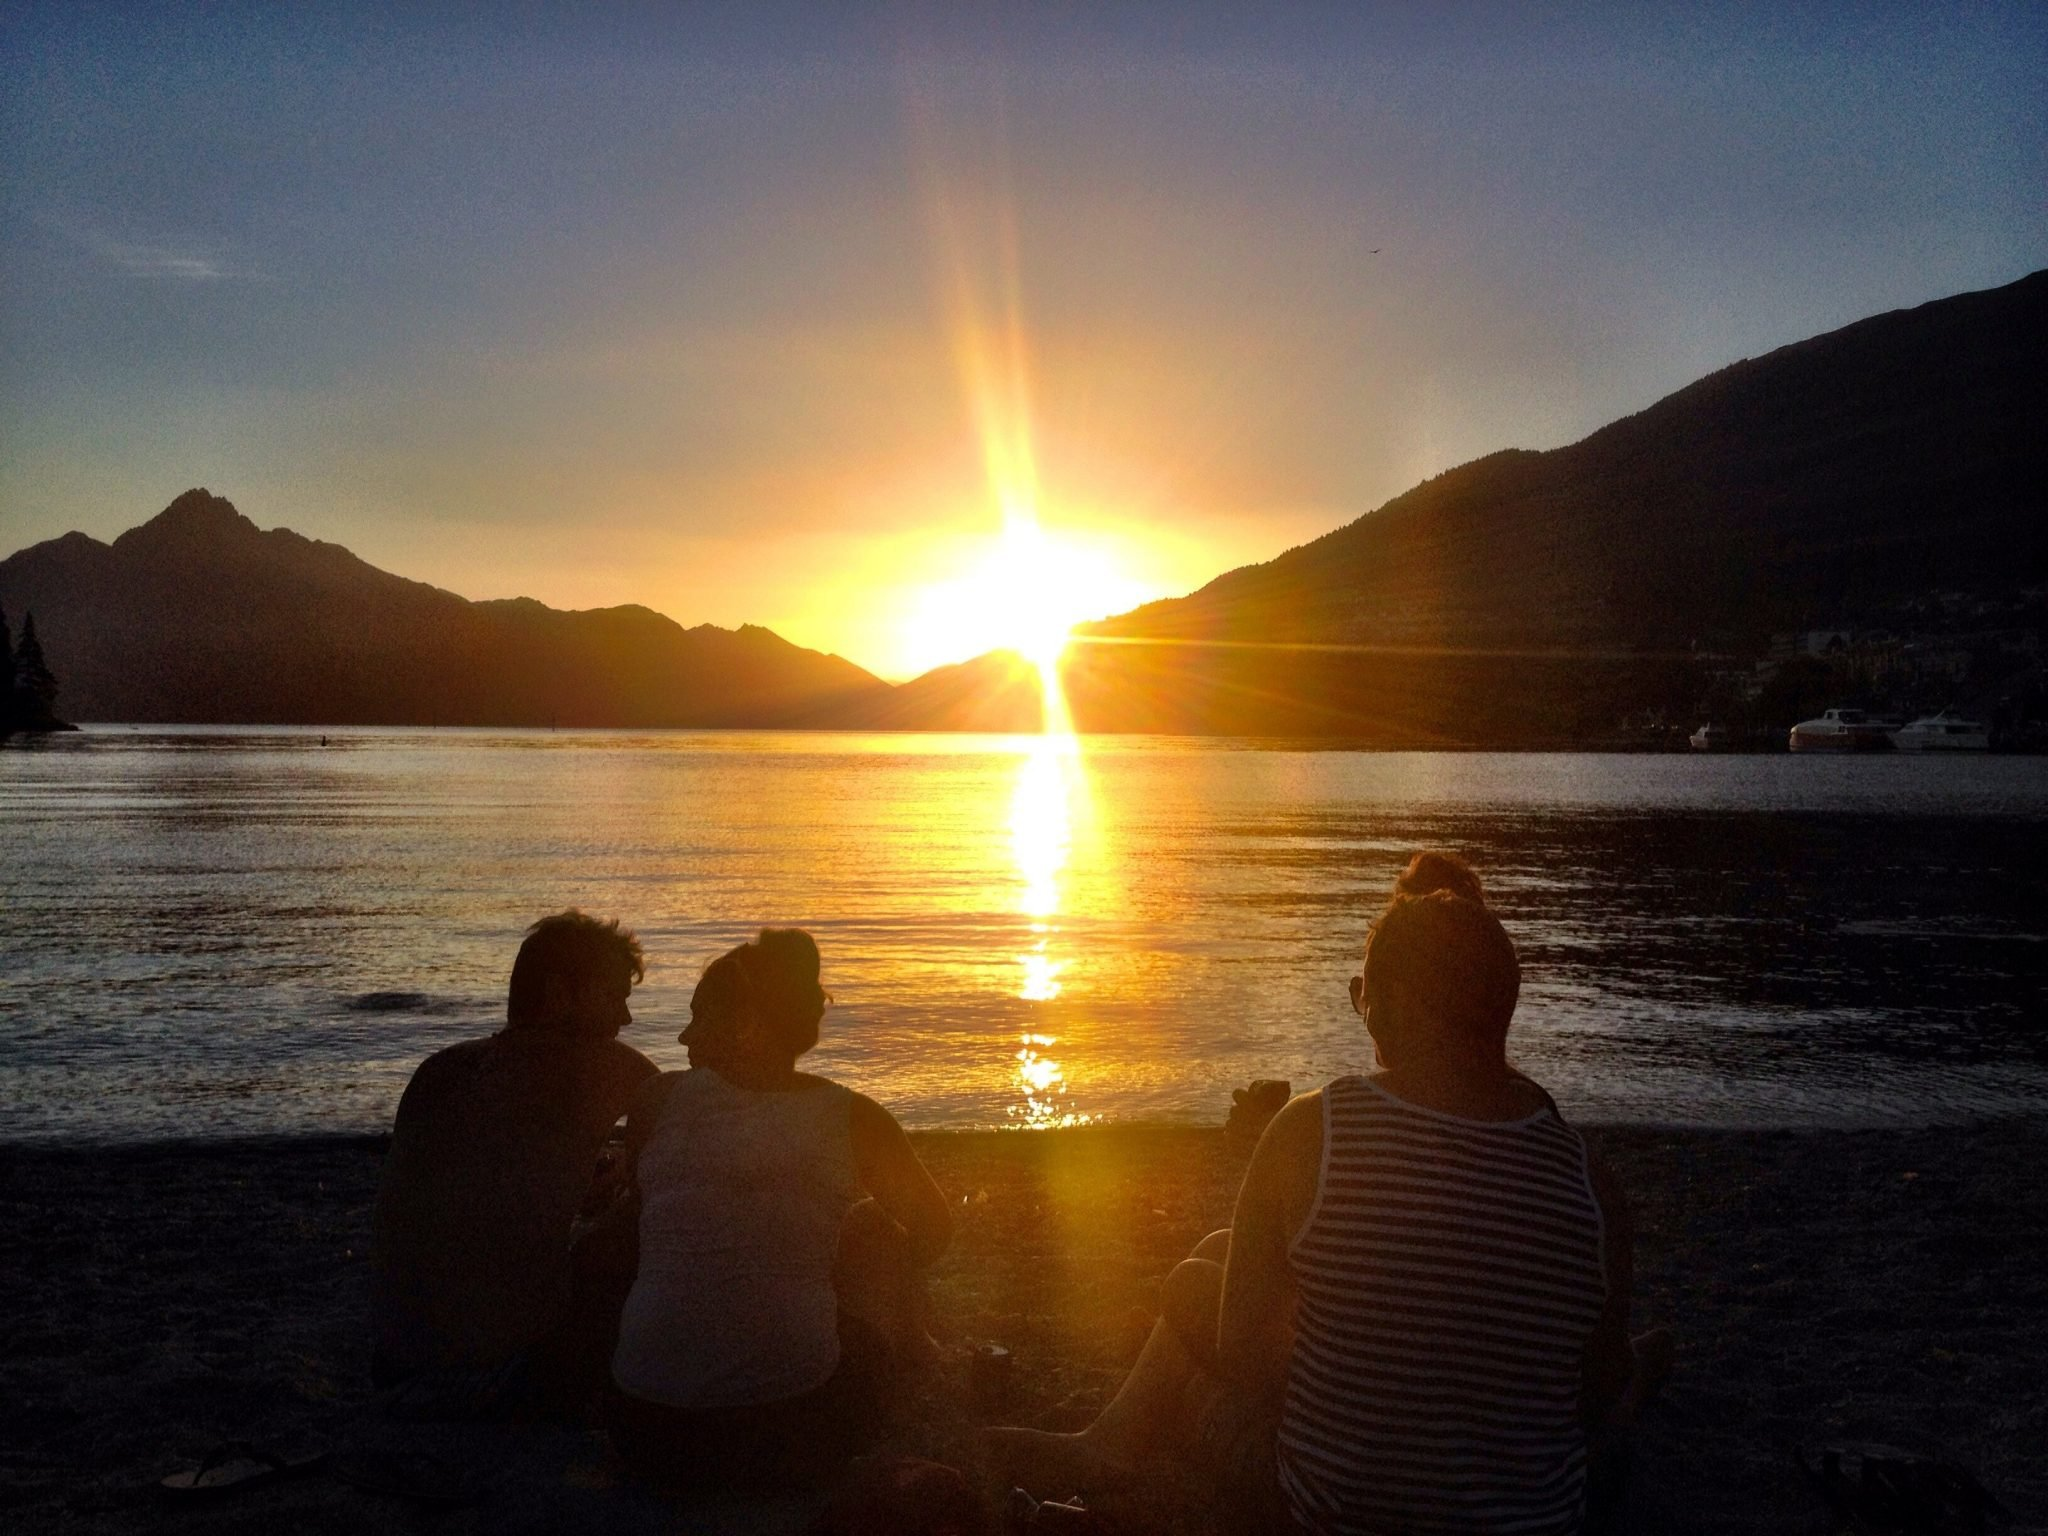 Sunset in Queenstown, New Zealand